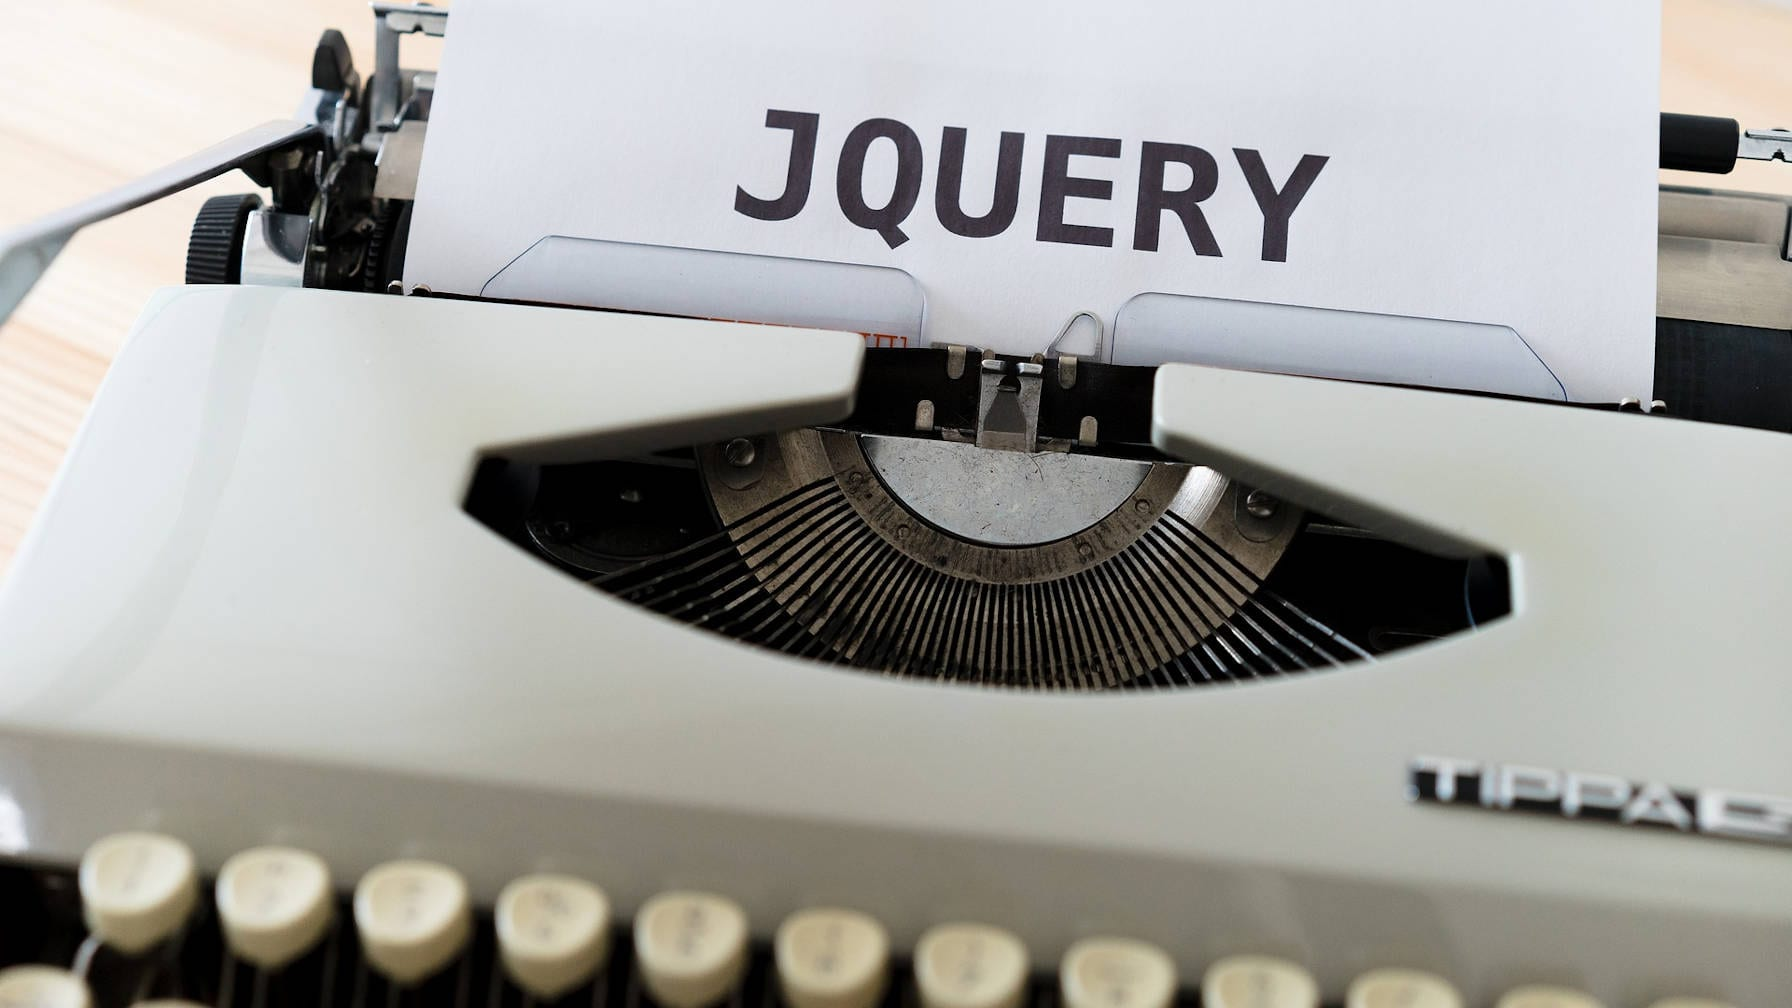 major-jquery-changes-on-the-way-for-wordpress-5-5-and-beyond Major jQuery Changes on the Way for WordPress 5.5 and Beyond